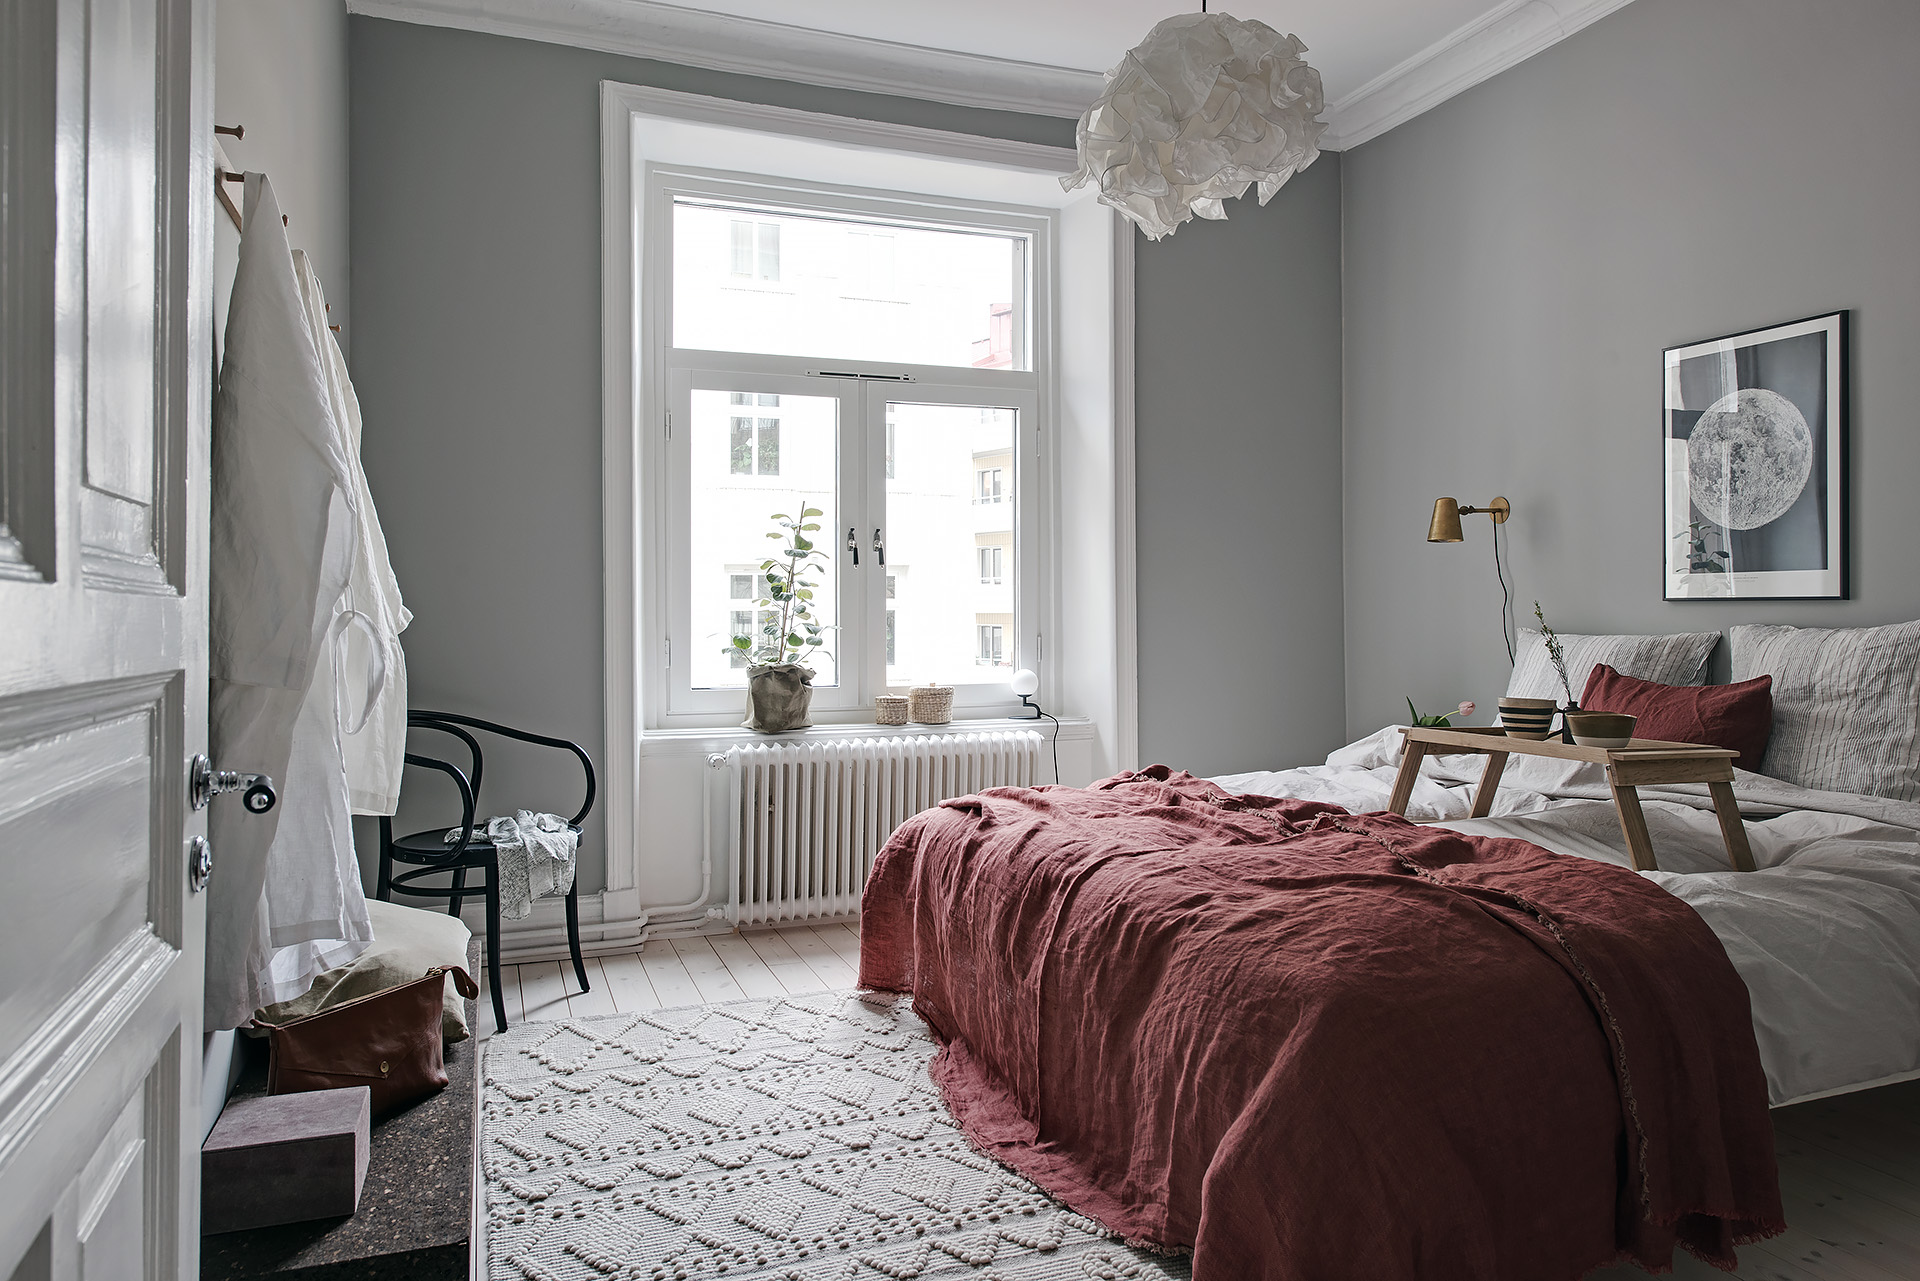 Cozy Bedroom With Red Details